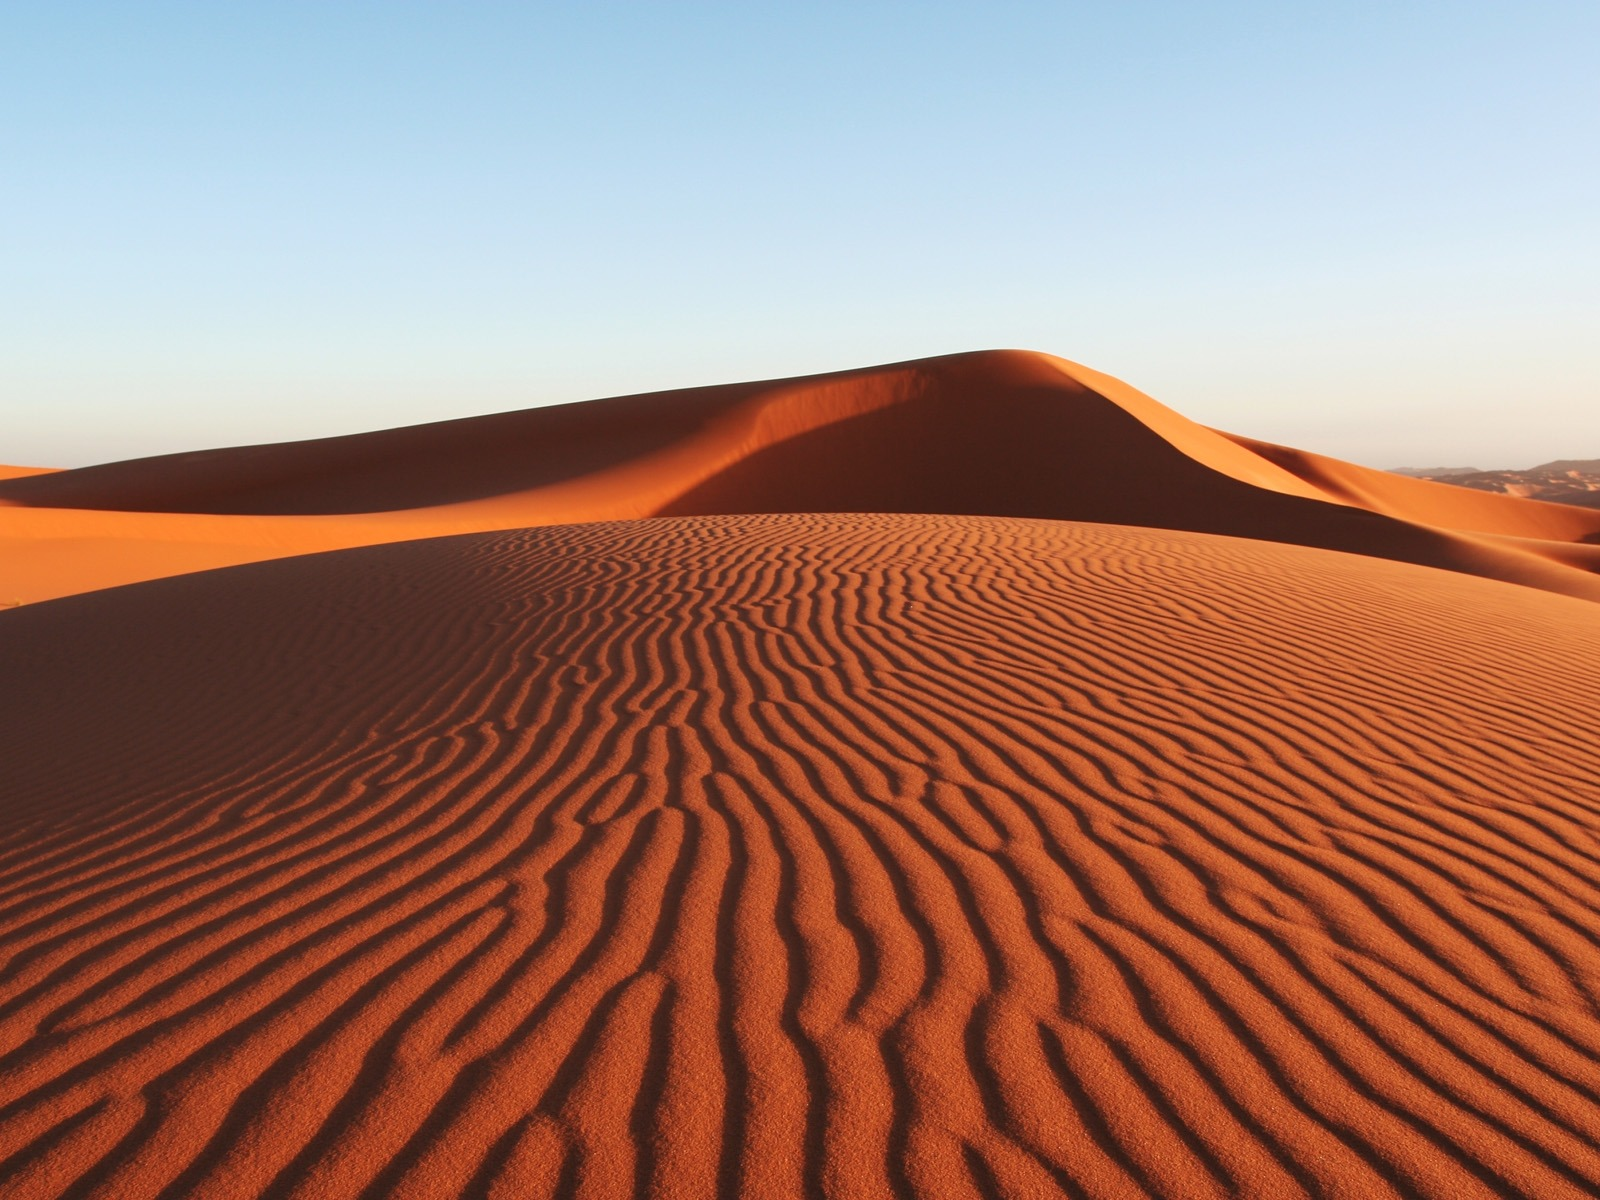 3d Movies Wallpapers Free Download Desert Sand Dune Wallpaper Landscape Nature Wallpapers In